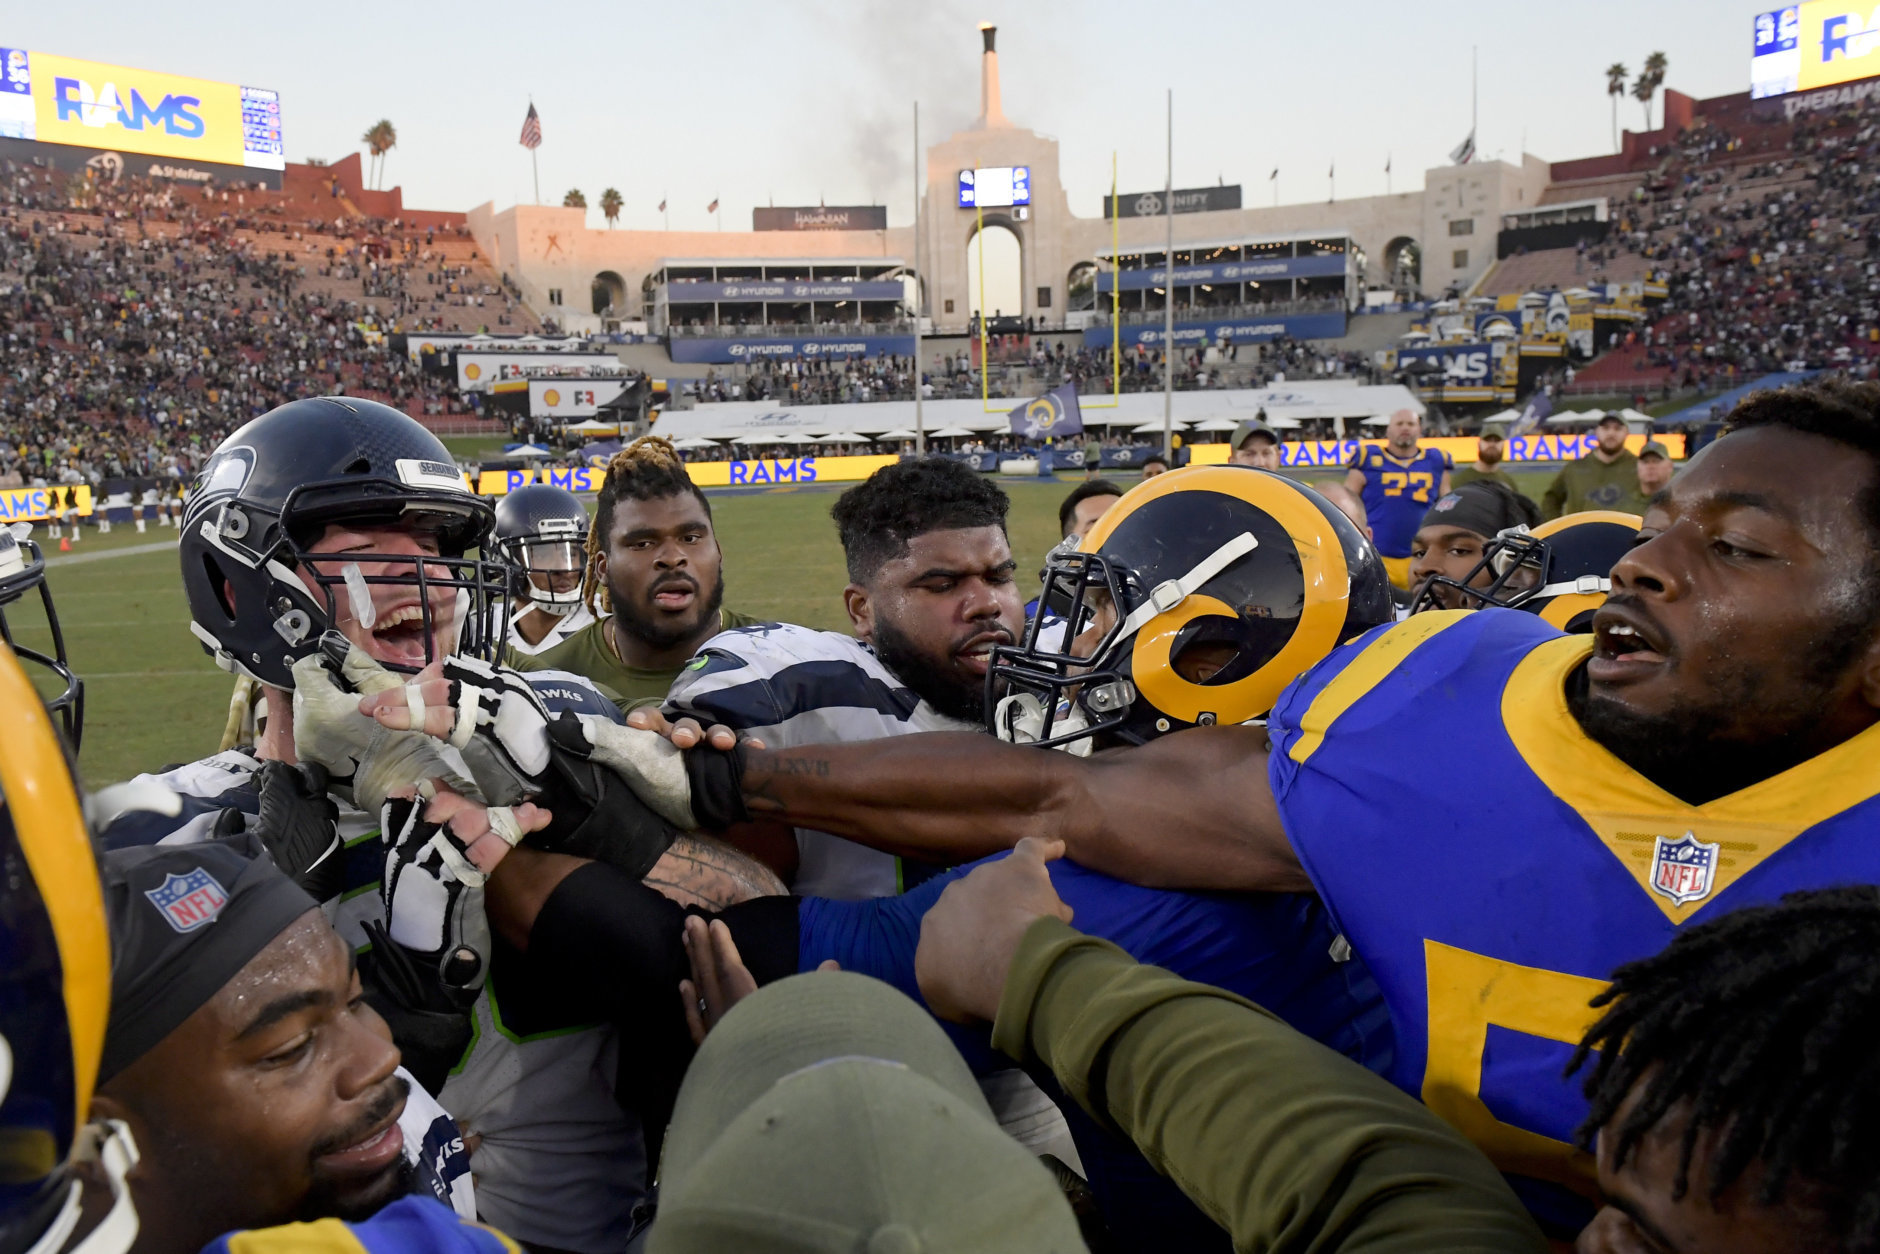 Seattle Seahawks center Justin Britt, left, and Los Angeles Rams defensive end Dante Fowler fight after an NFL football game Sunday, Nov. 11, 2018, in Los Angeles.the Rams won 31-36. (AP Photo/Mark J. Terrill)